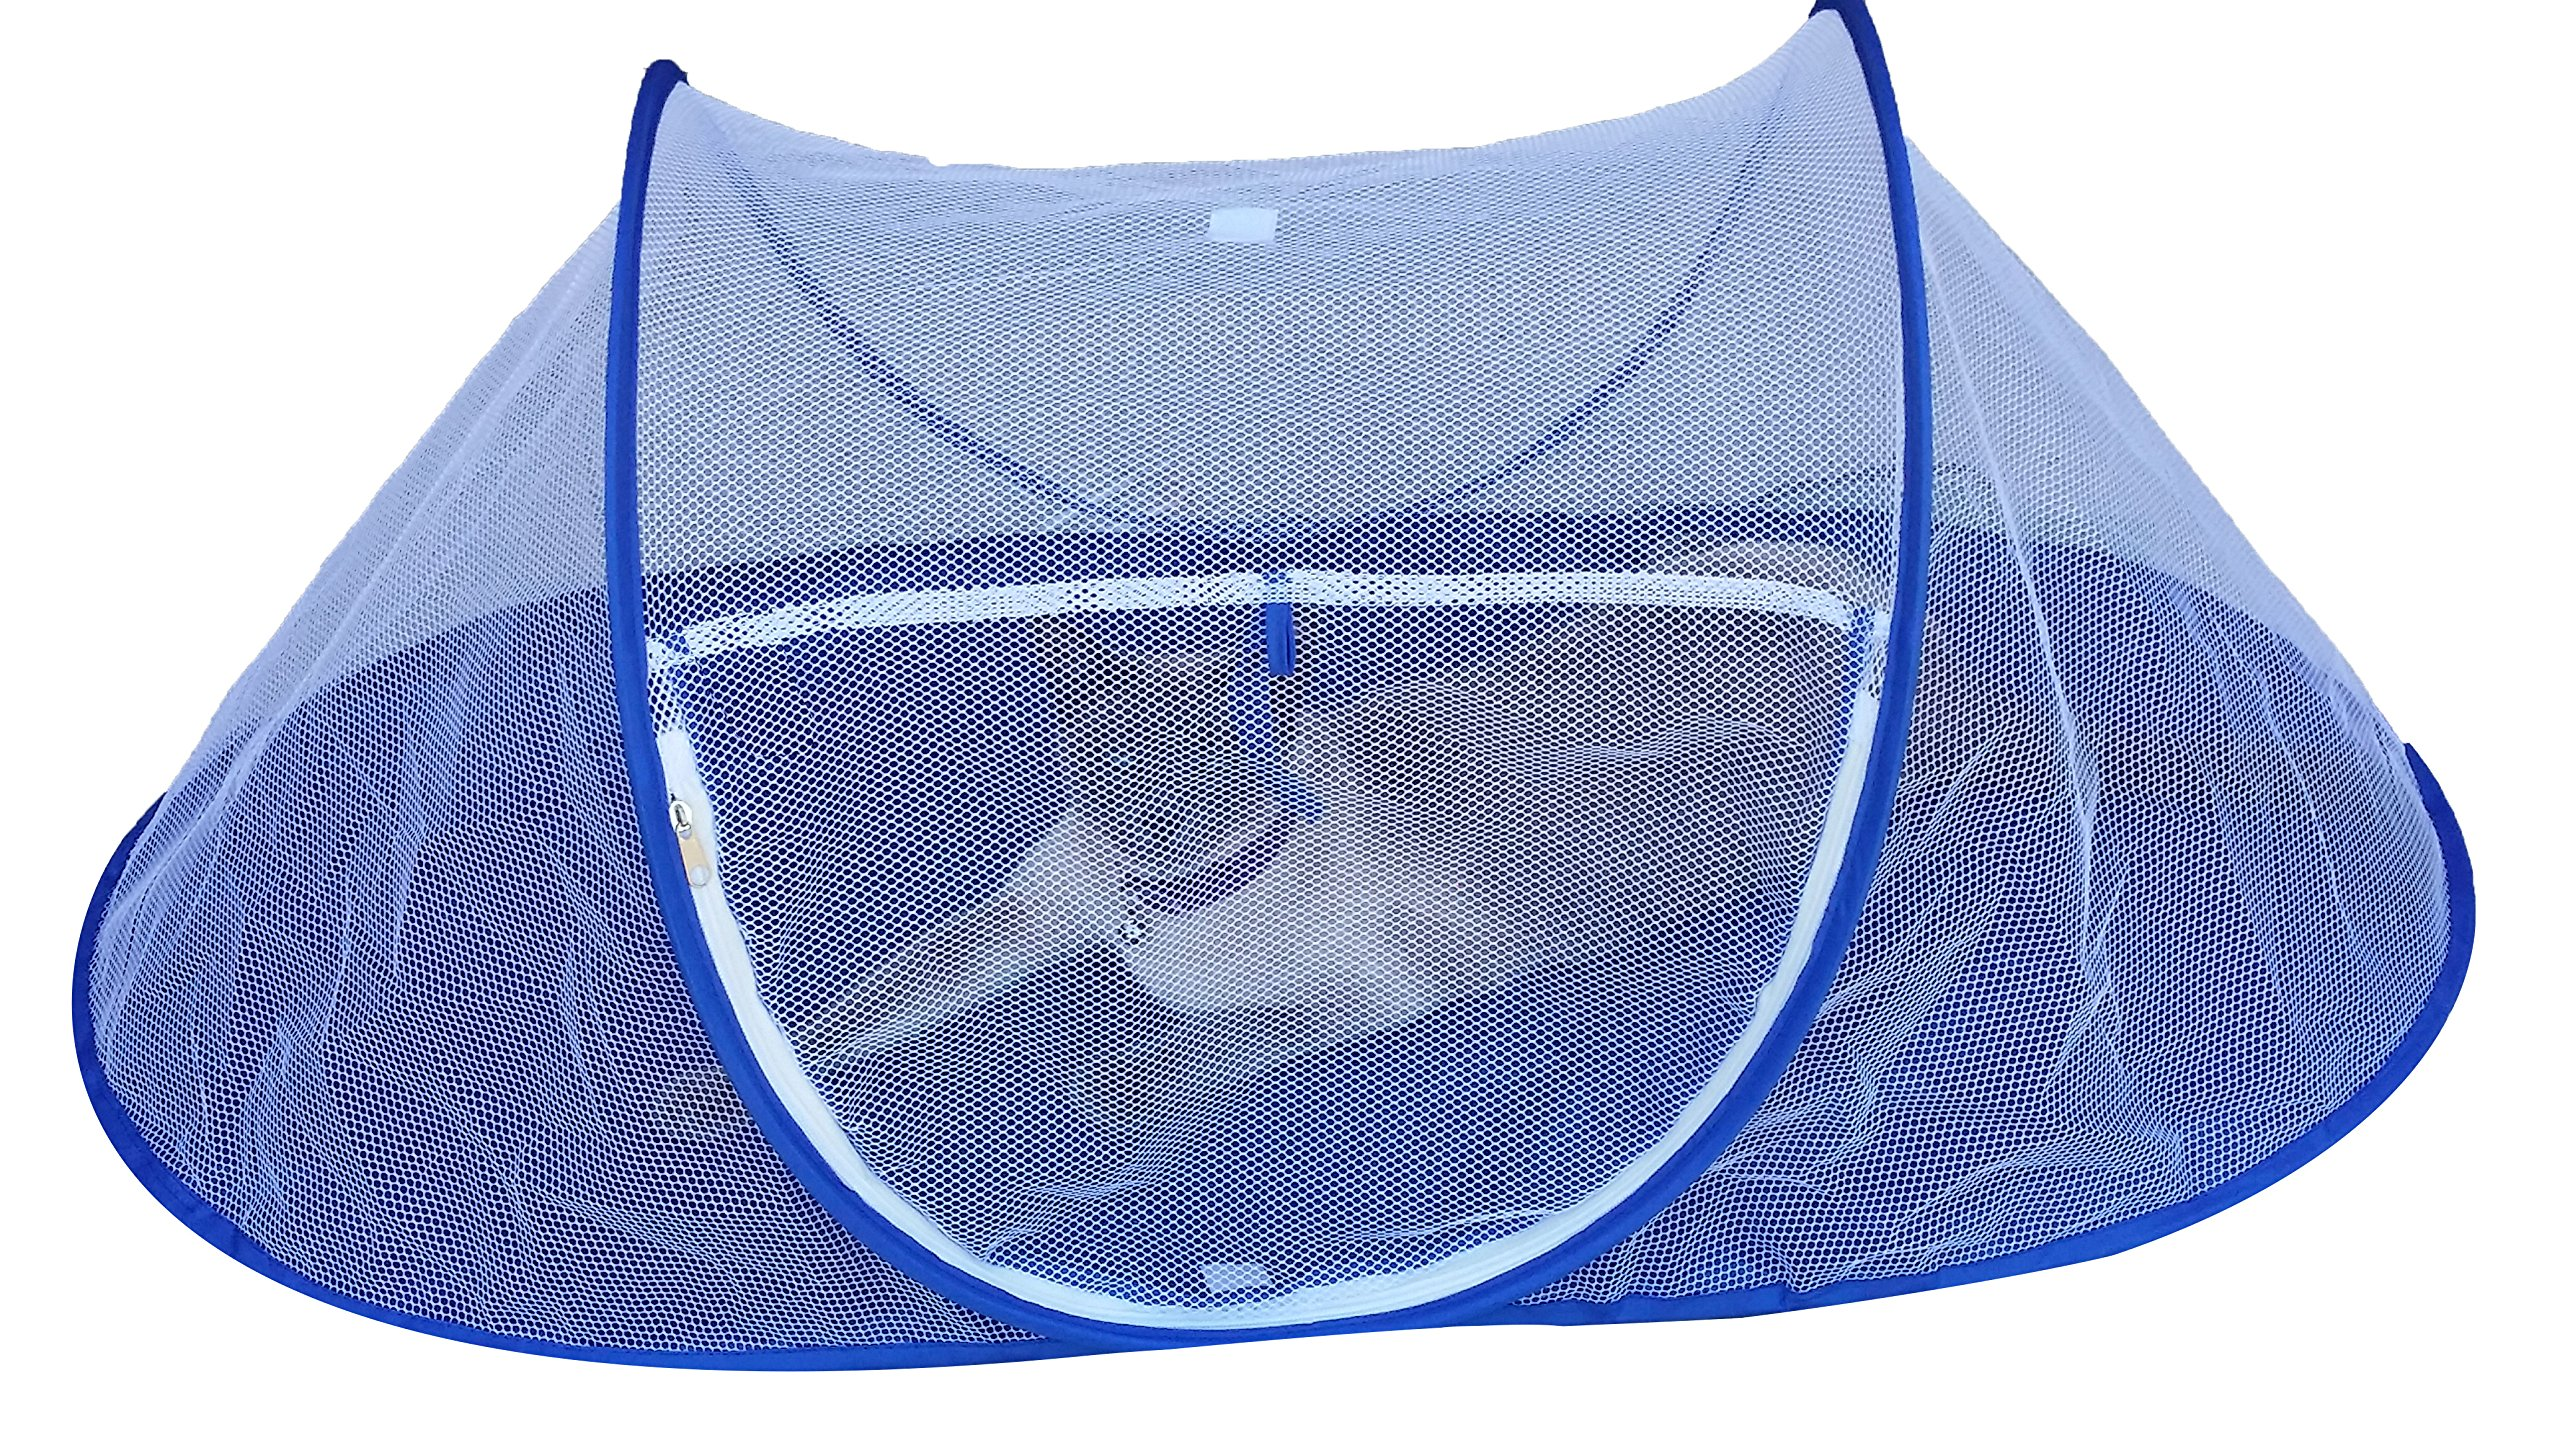 Nala and Company - THE CAT HOUSE Indoor Outdoor Pet Enclosure Portable Pop Up